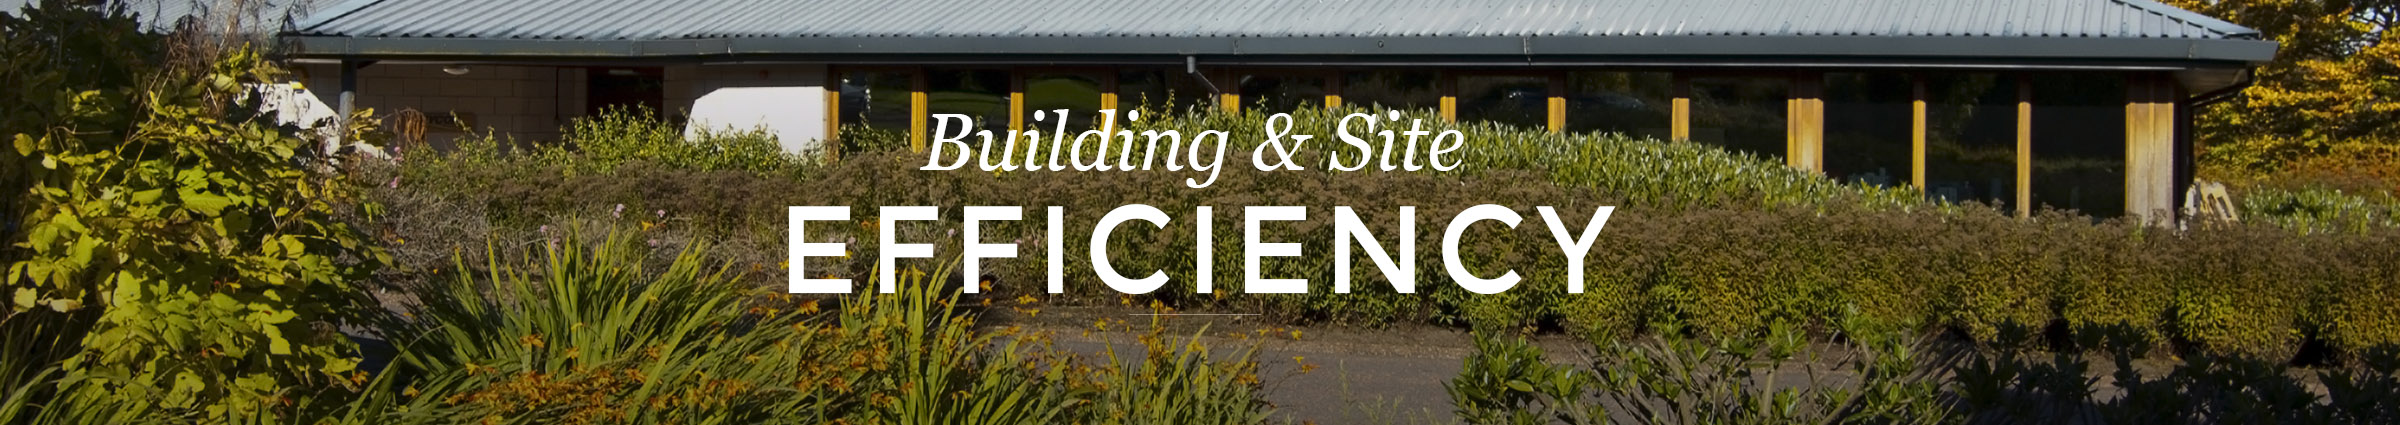 Building and Site Efficiency